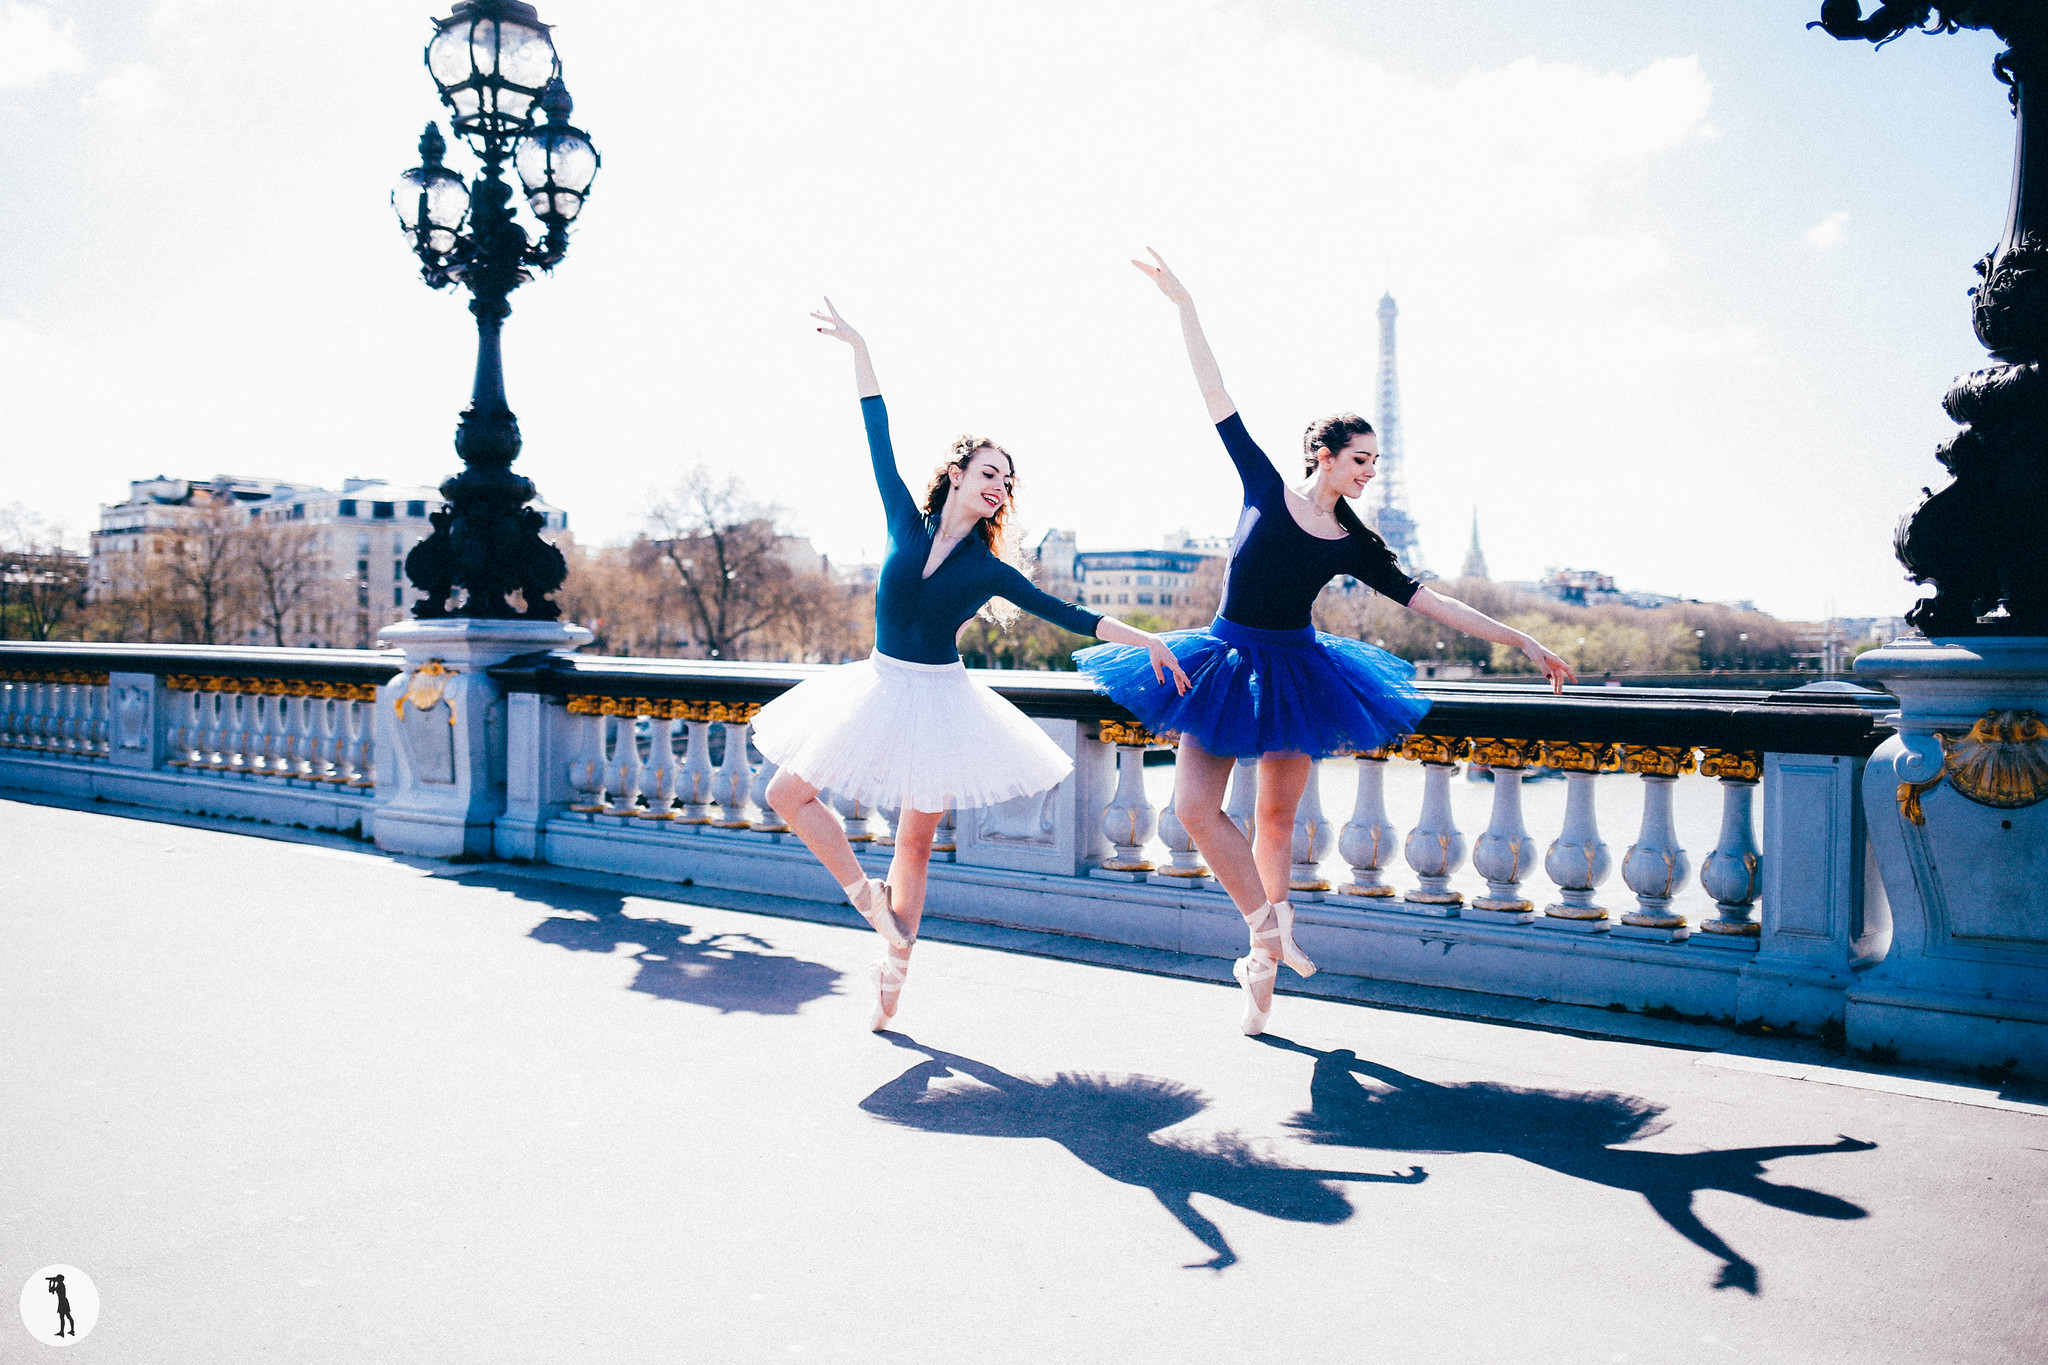 Ballet dancers from Opera Paris School. Danseuses classiques de l'école de l'opéra de Paris. Photo shooting by Marie-Paola BERTRAND-HILLION